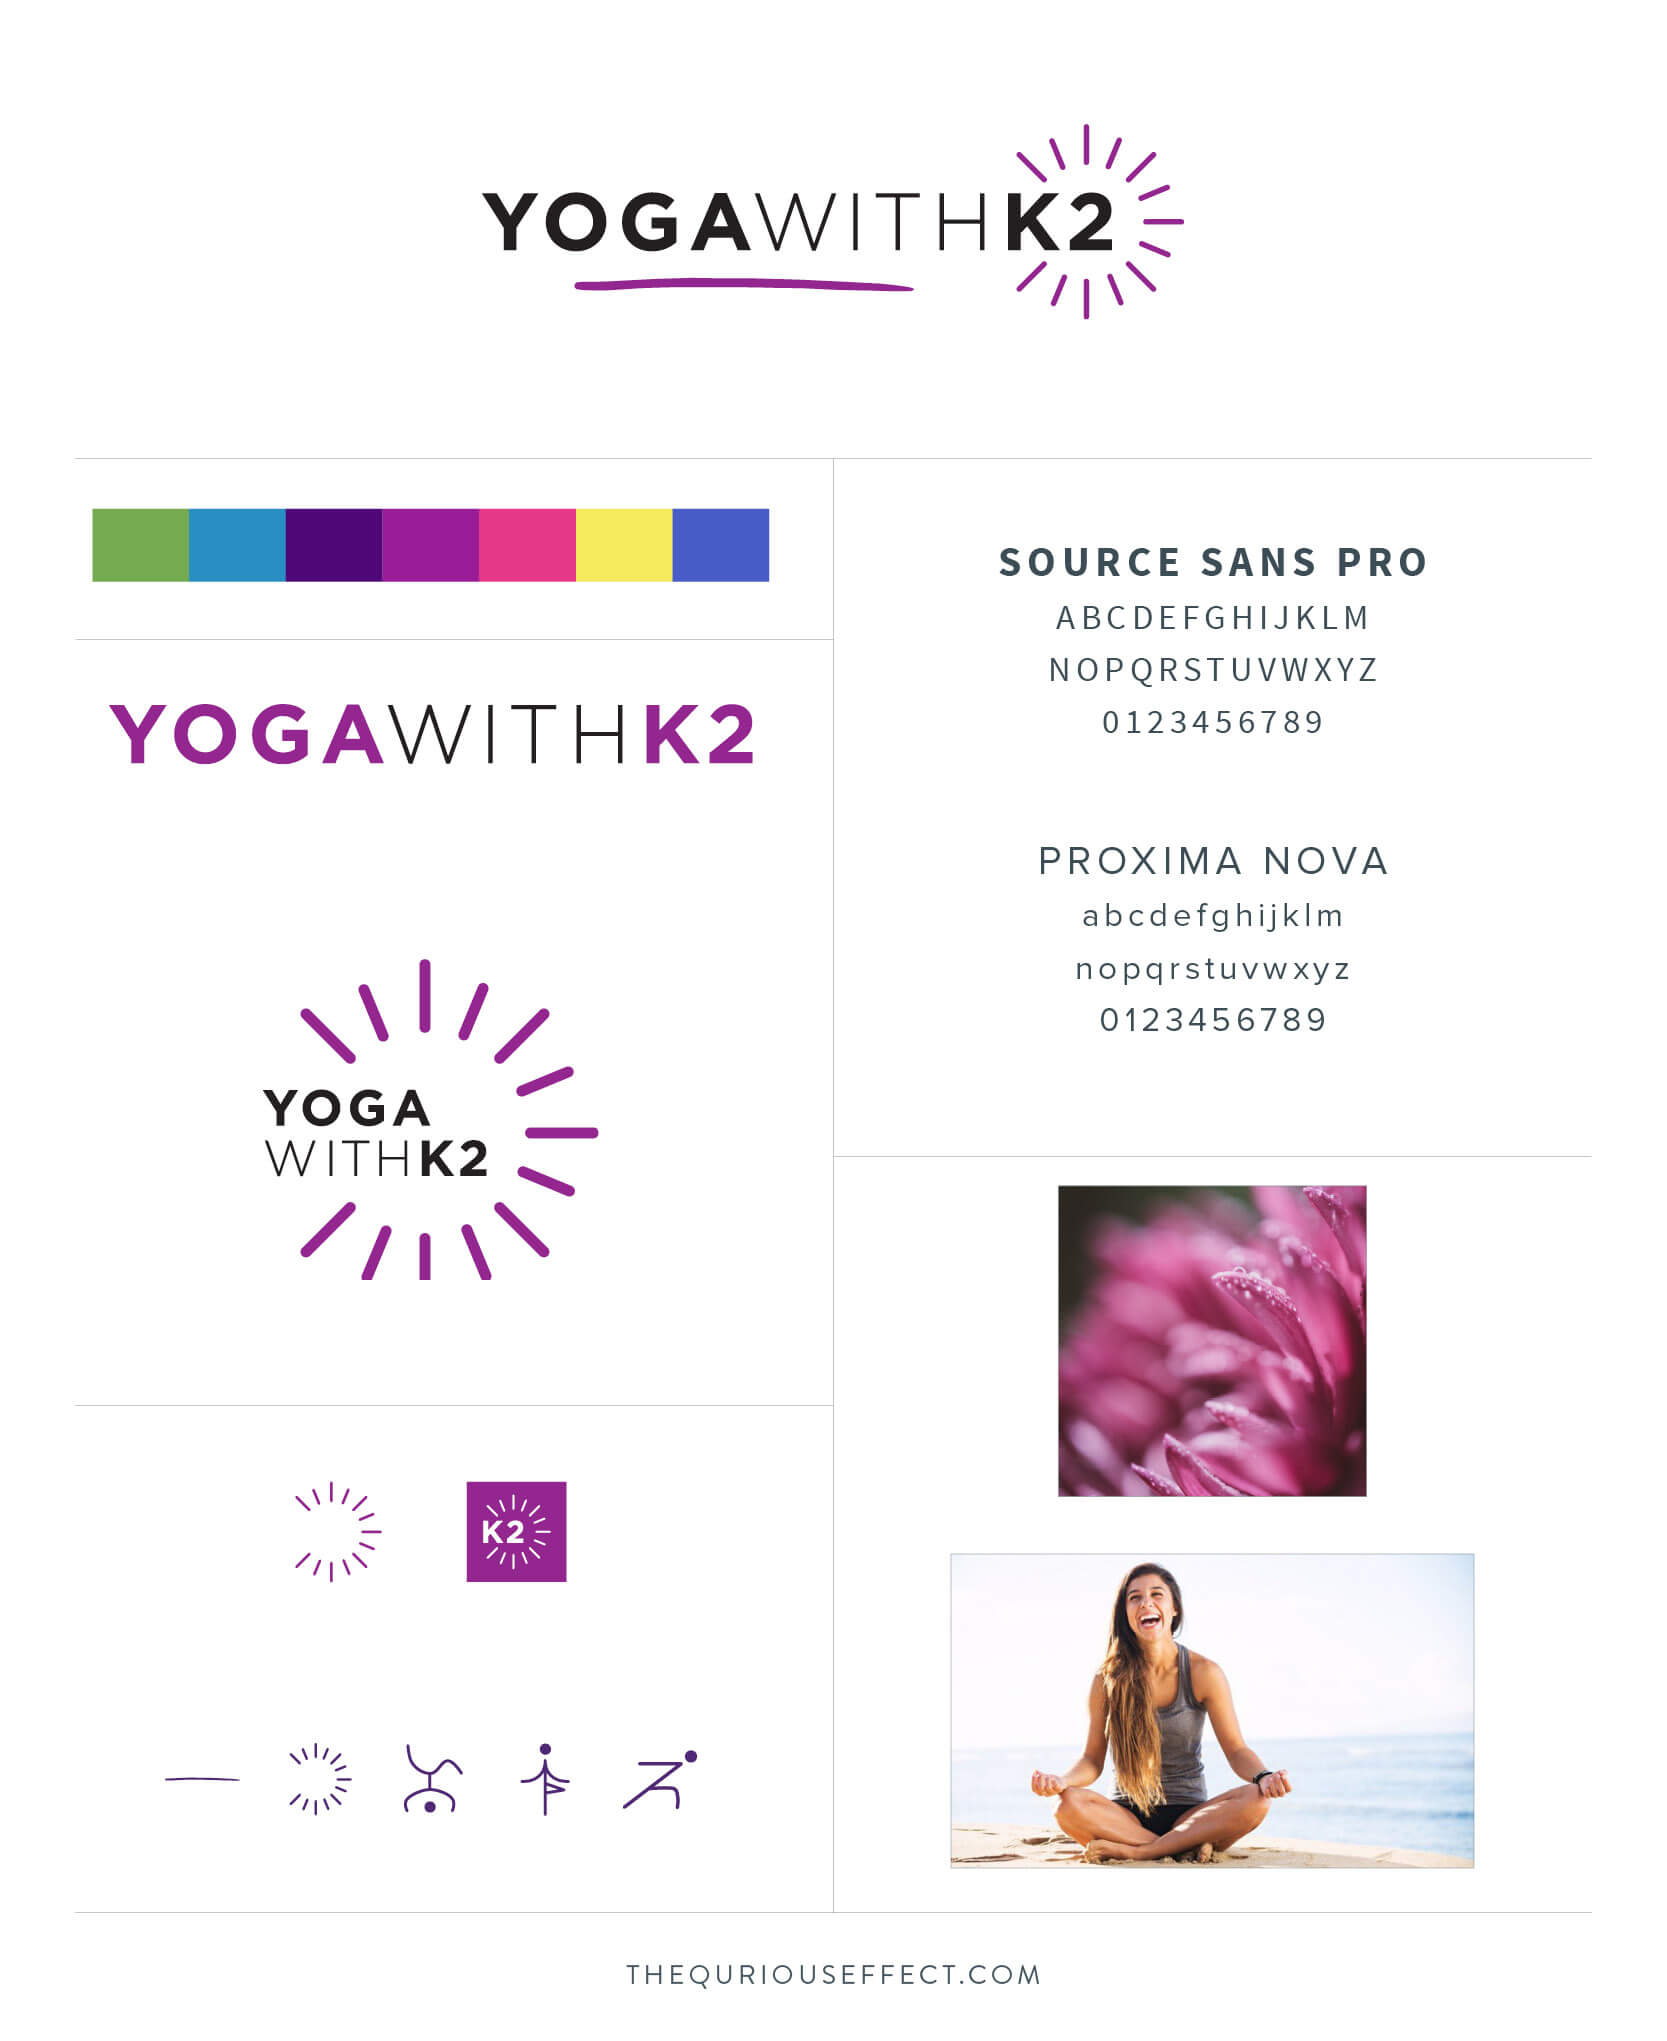 Yoga with K2 brand board by The Qurious Effect. A brand identity and Squarespace web design studio.